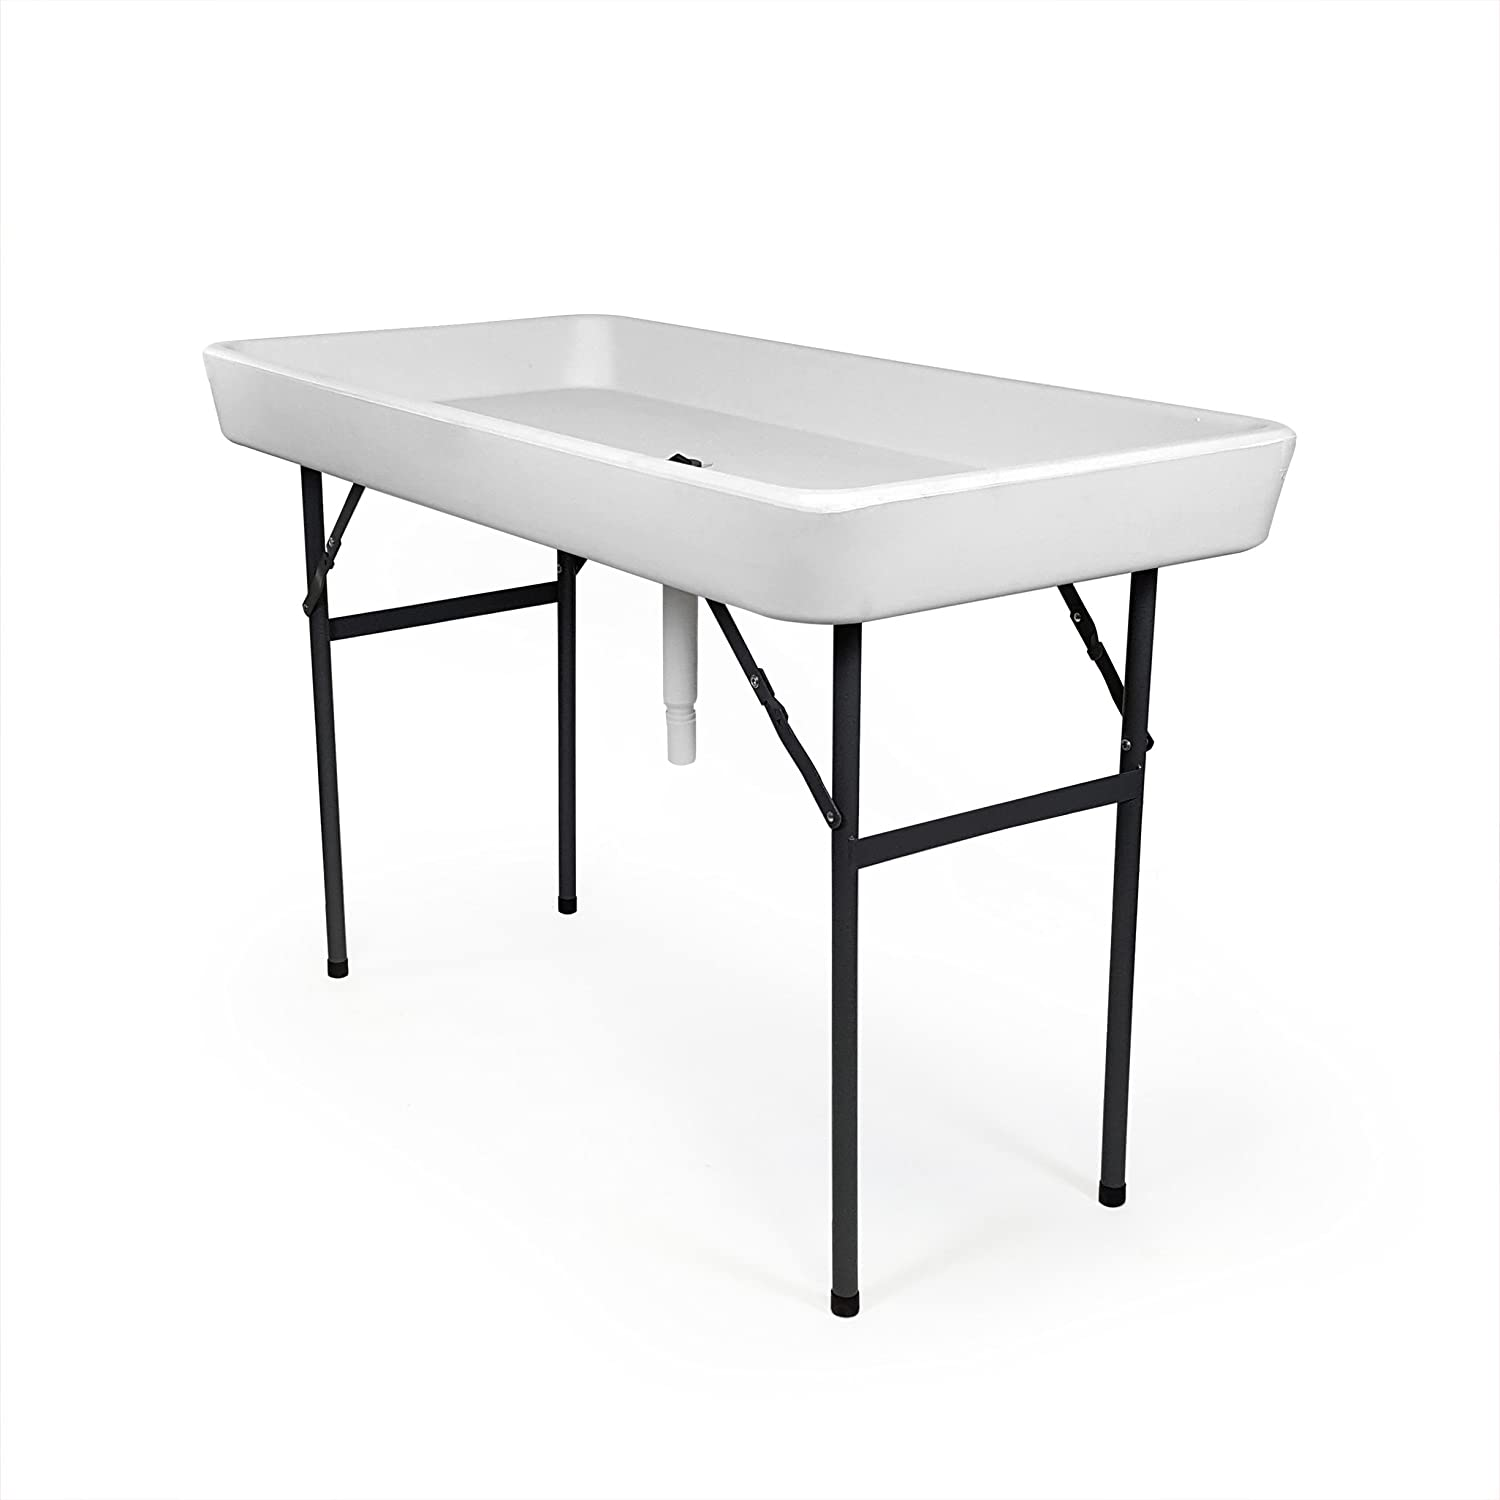 RecPro 4 Foot Cooler Ice Table Party Ice Folding Table with Matching Skirt – White